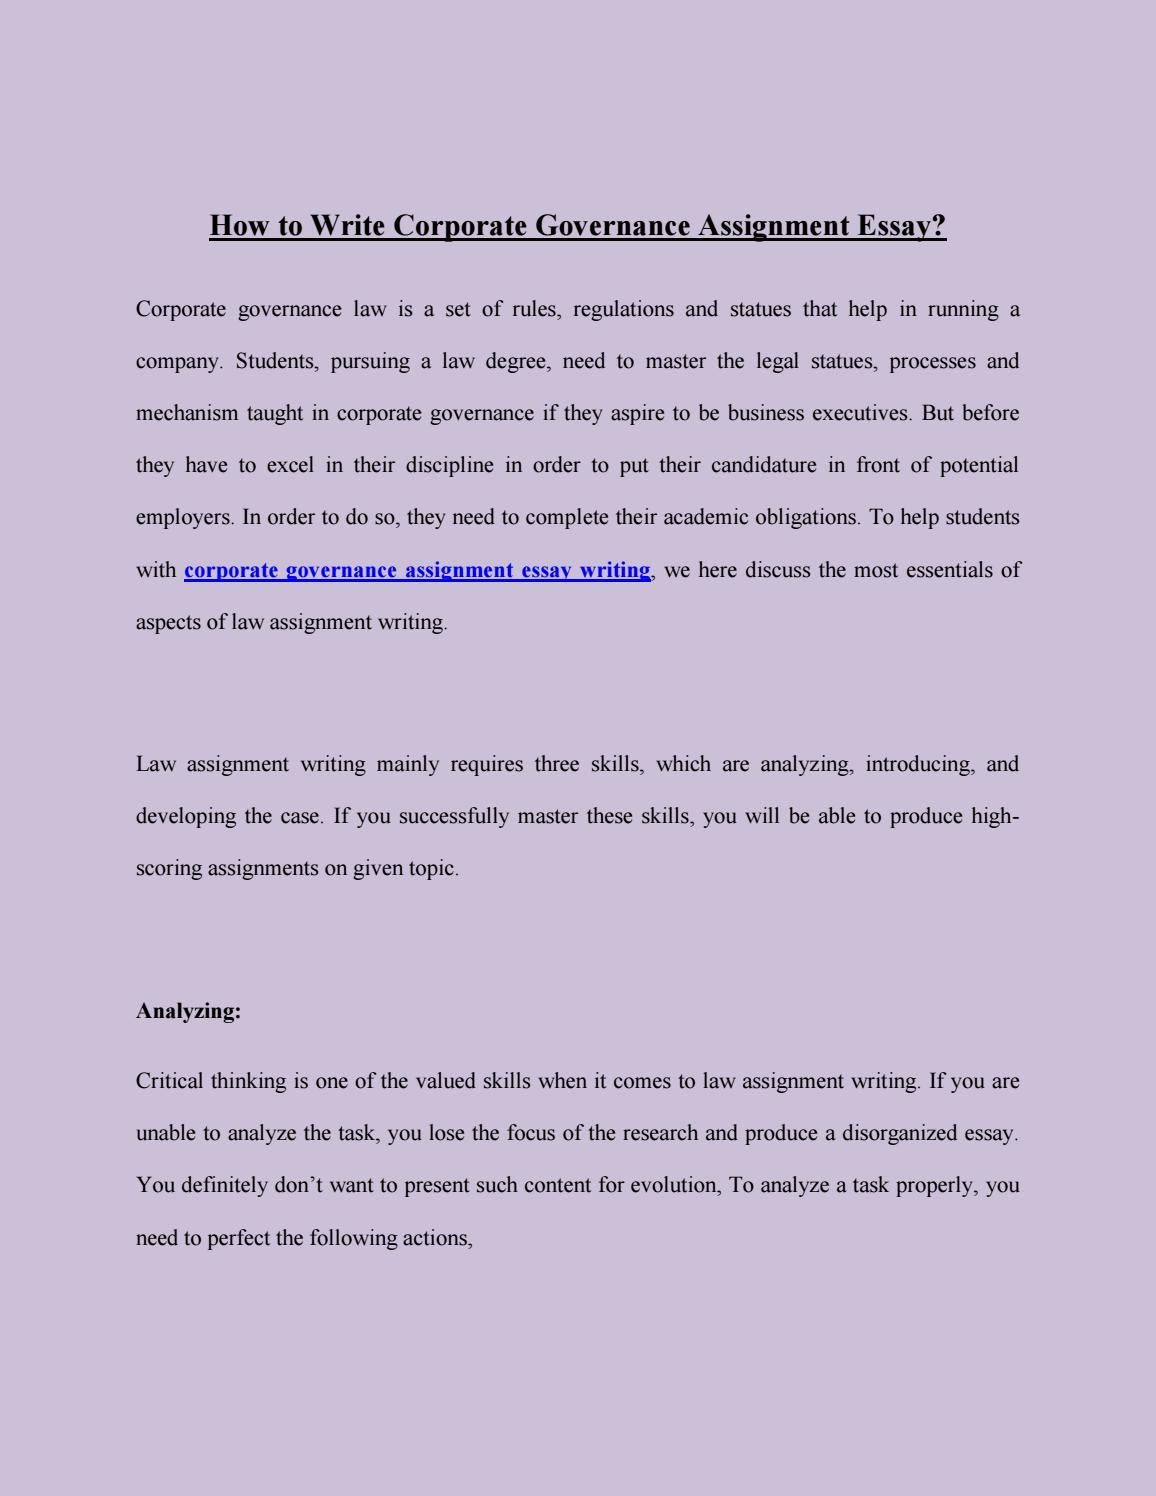 Assignment essay help essay writing service from custom essay